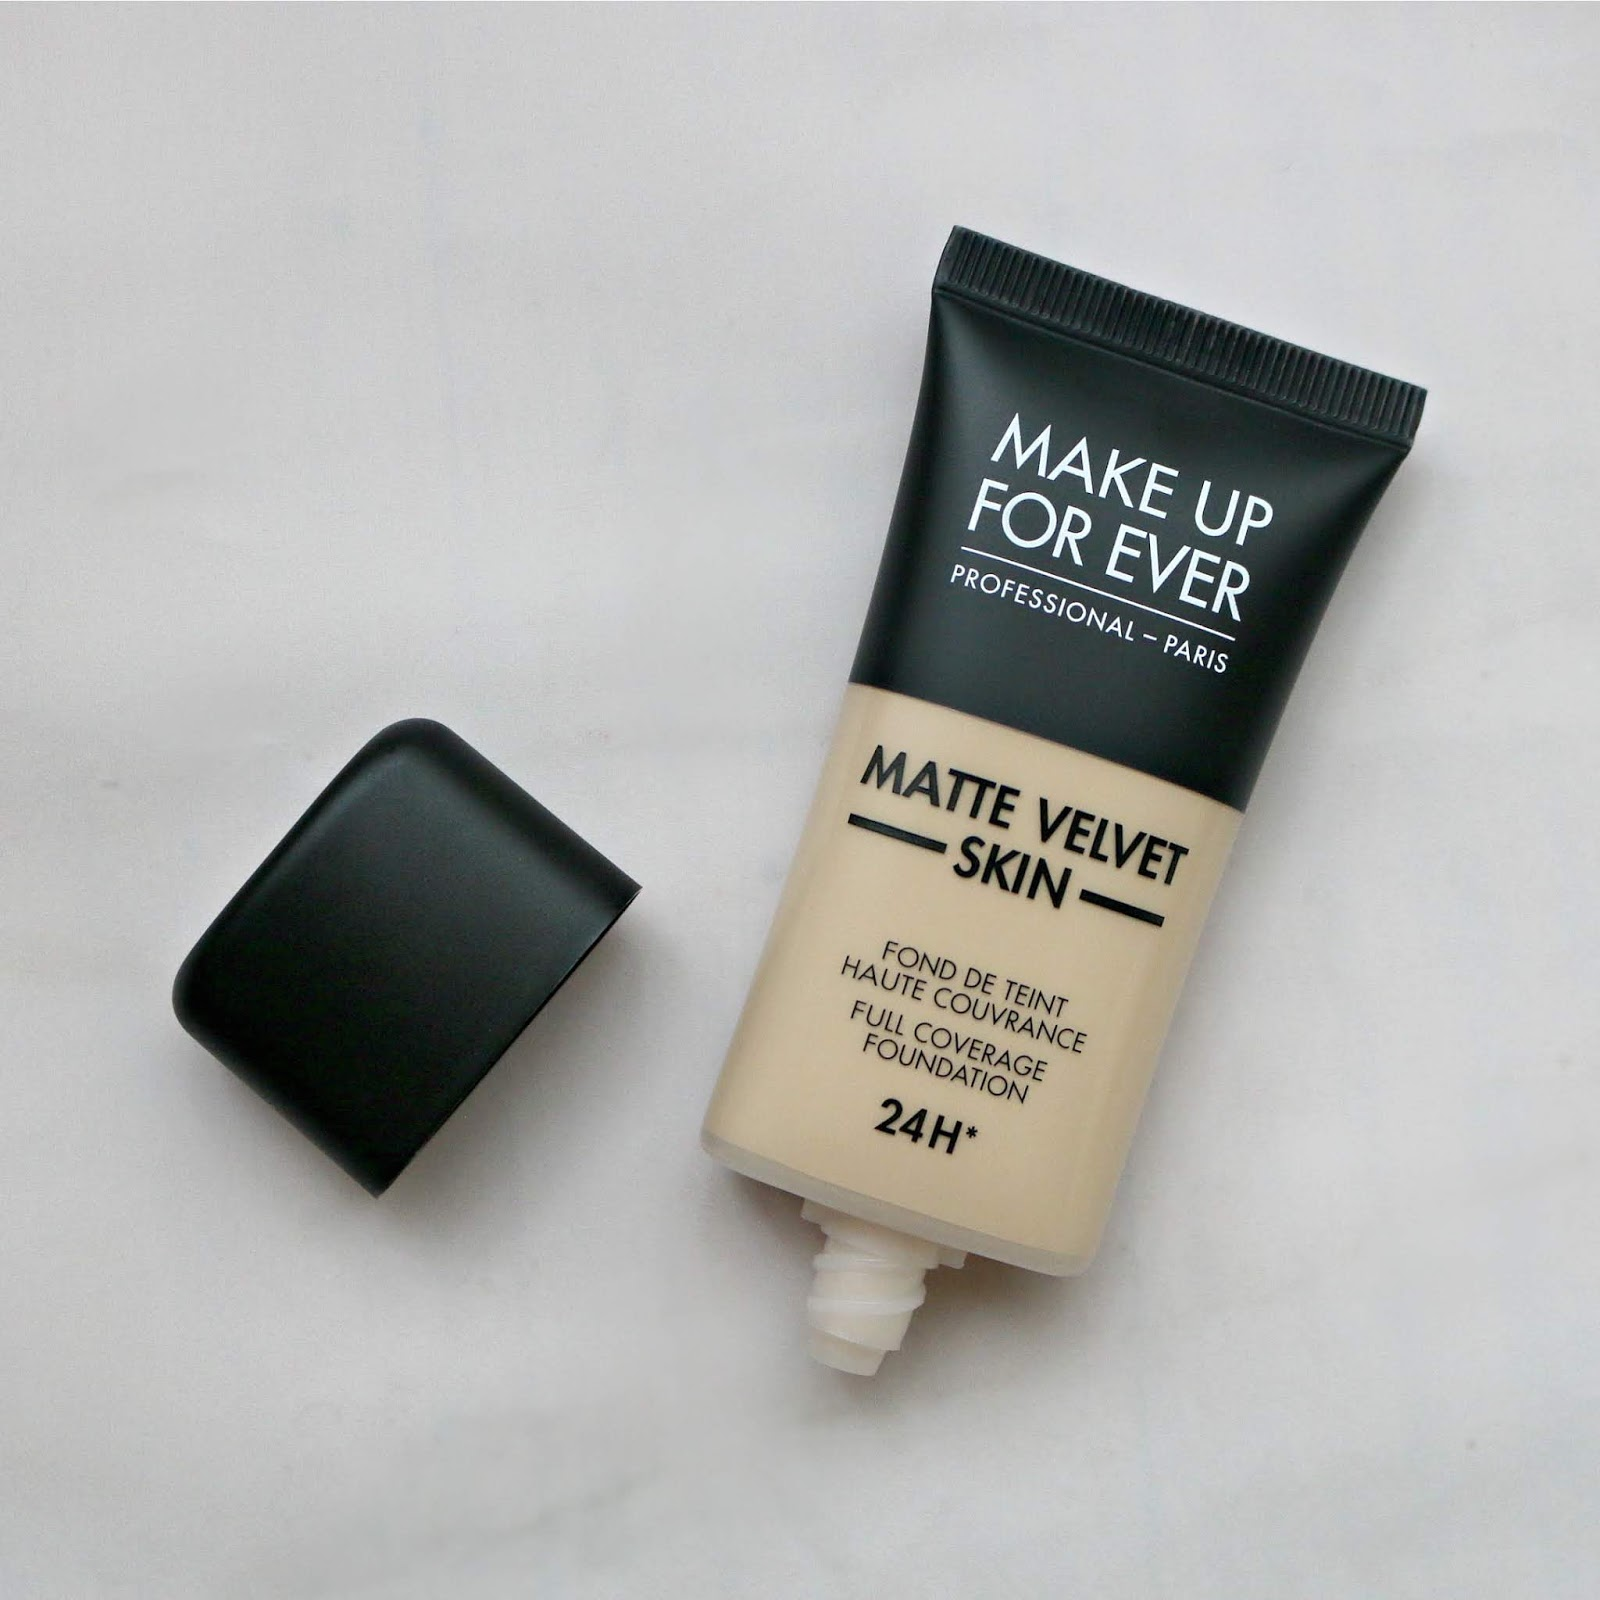 Make Up For Ever Matte Velvet Skin Foundation Y235 Review